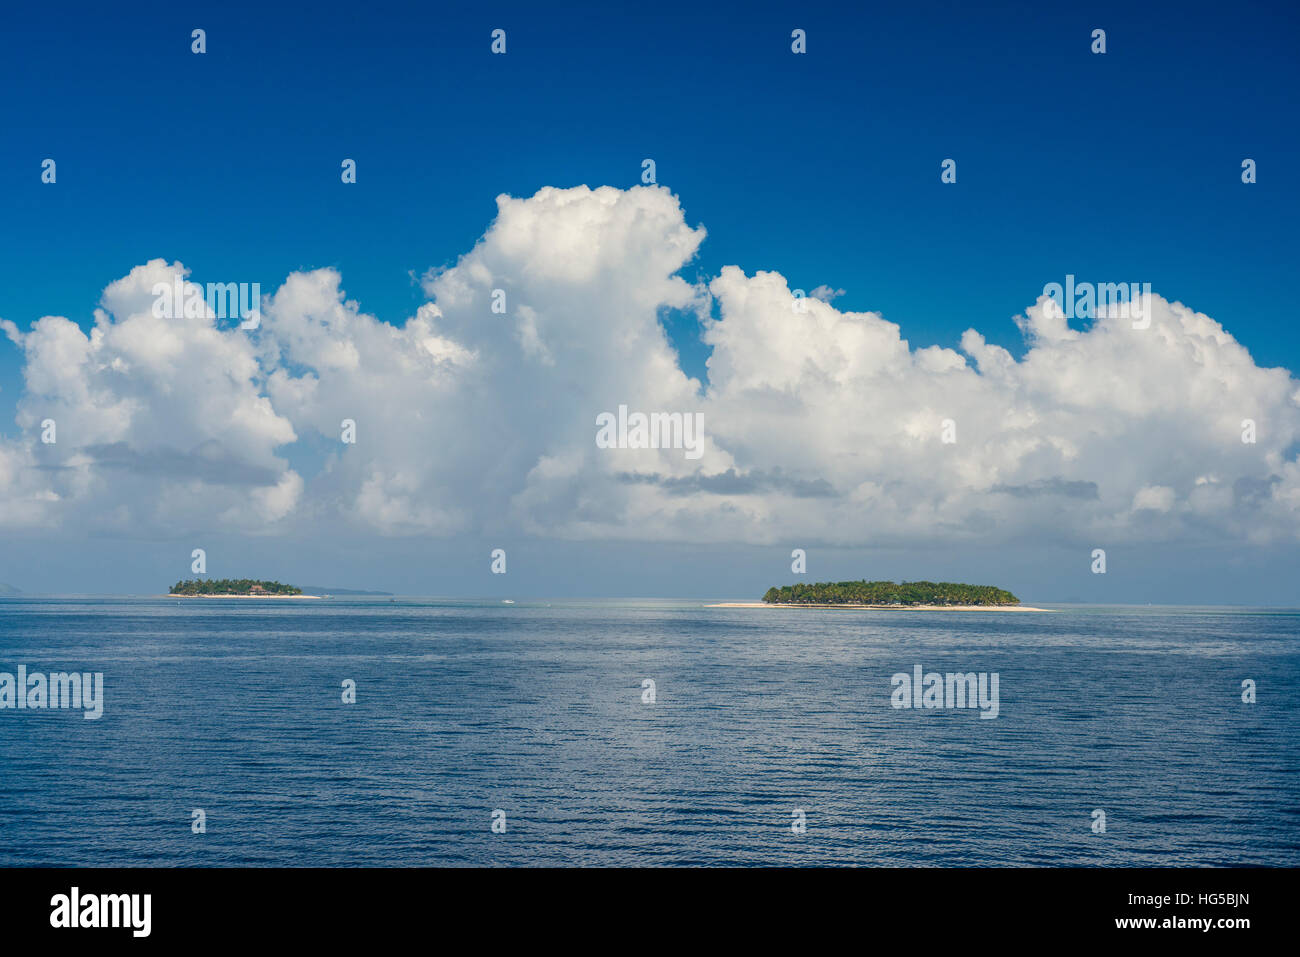 Very flat ocean, Mamanuca Islands, Fiji, South Pacific - Stock Image